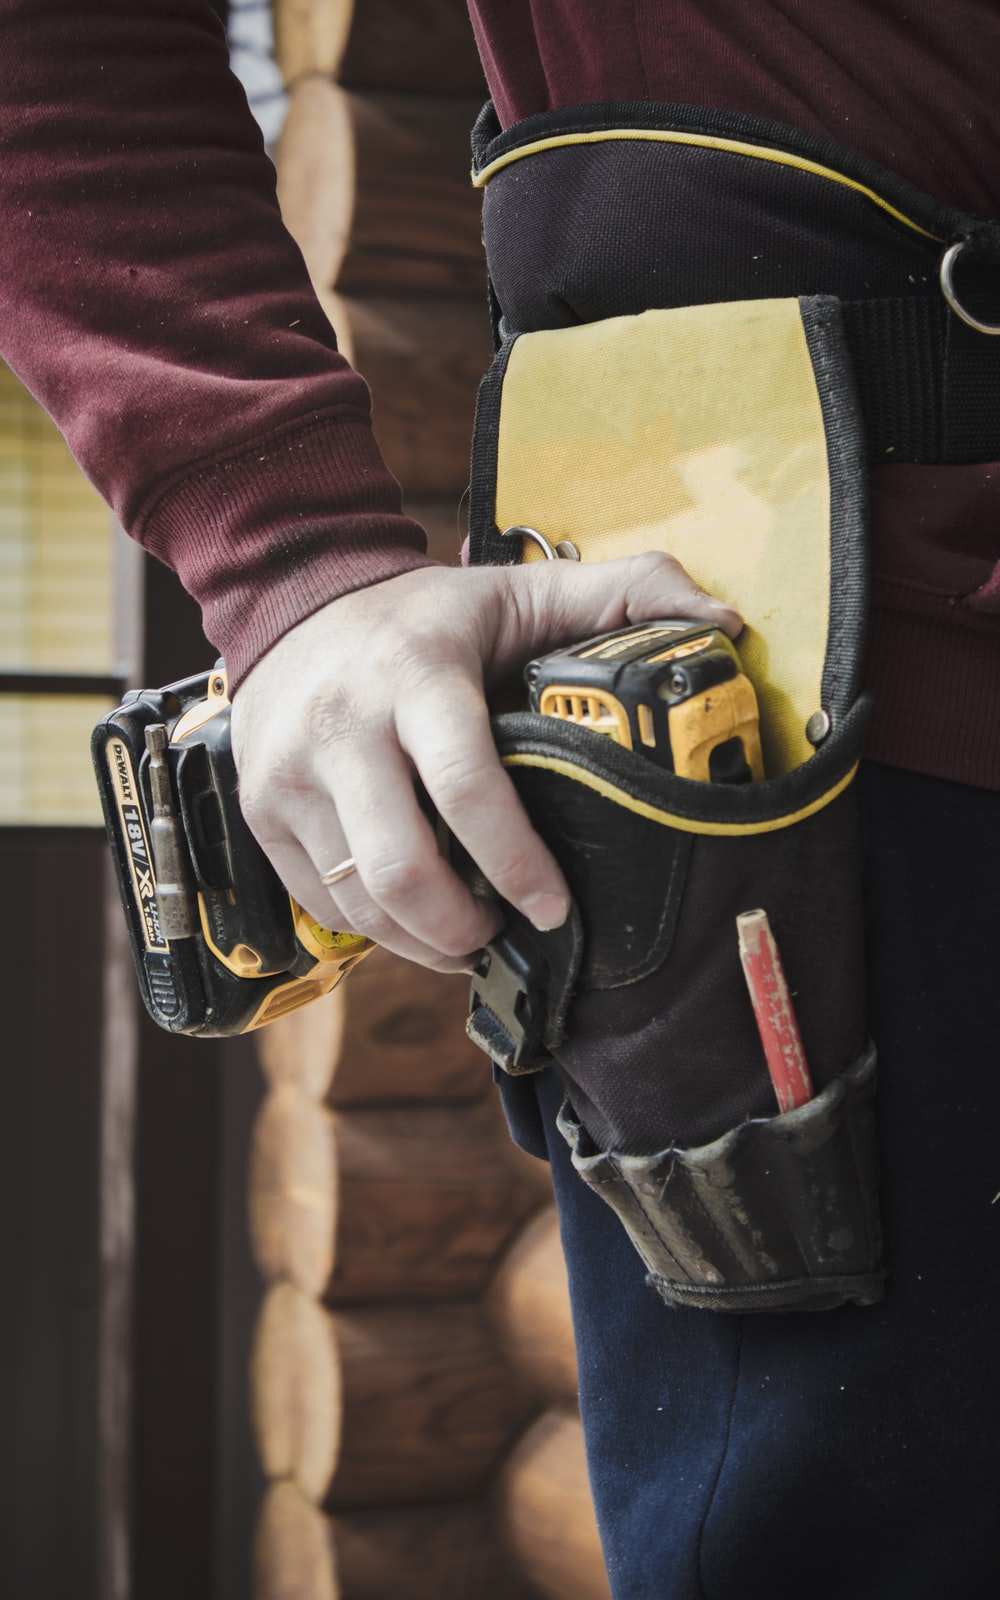 person holding black and yellow nike gloves